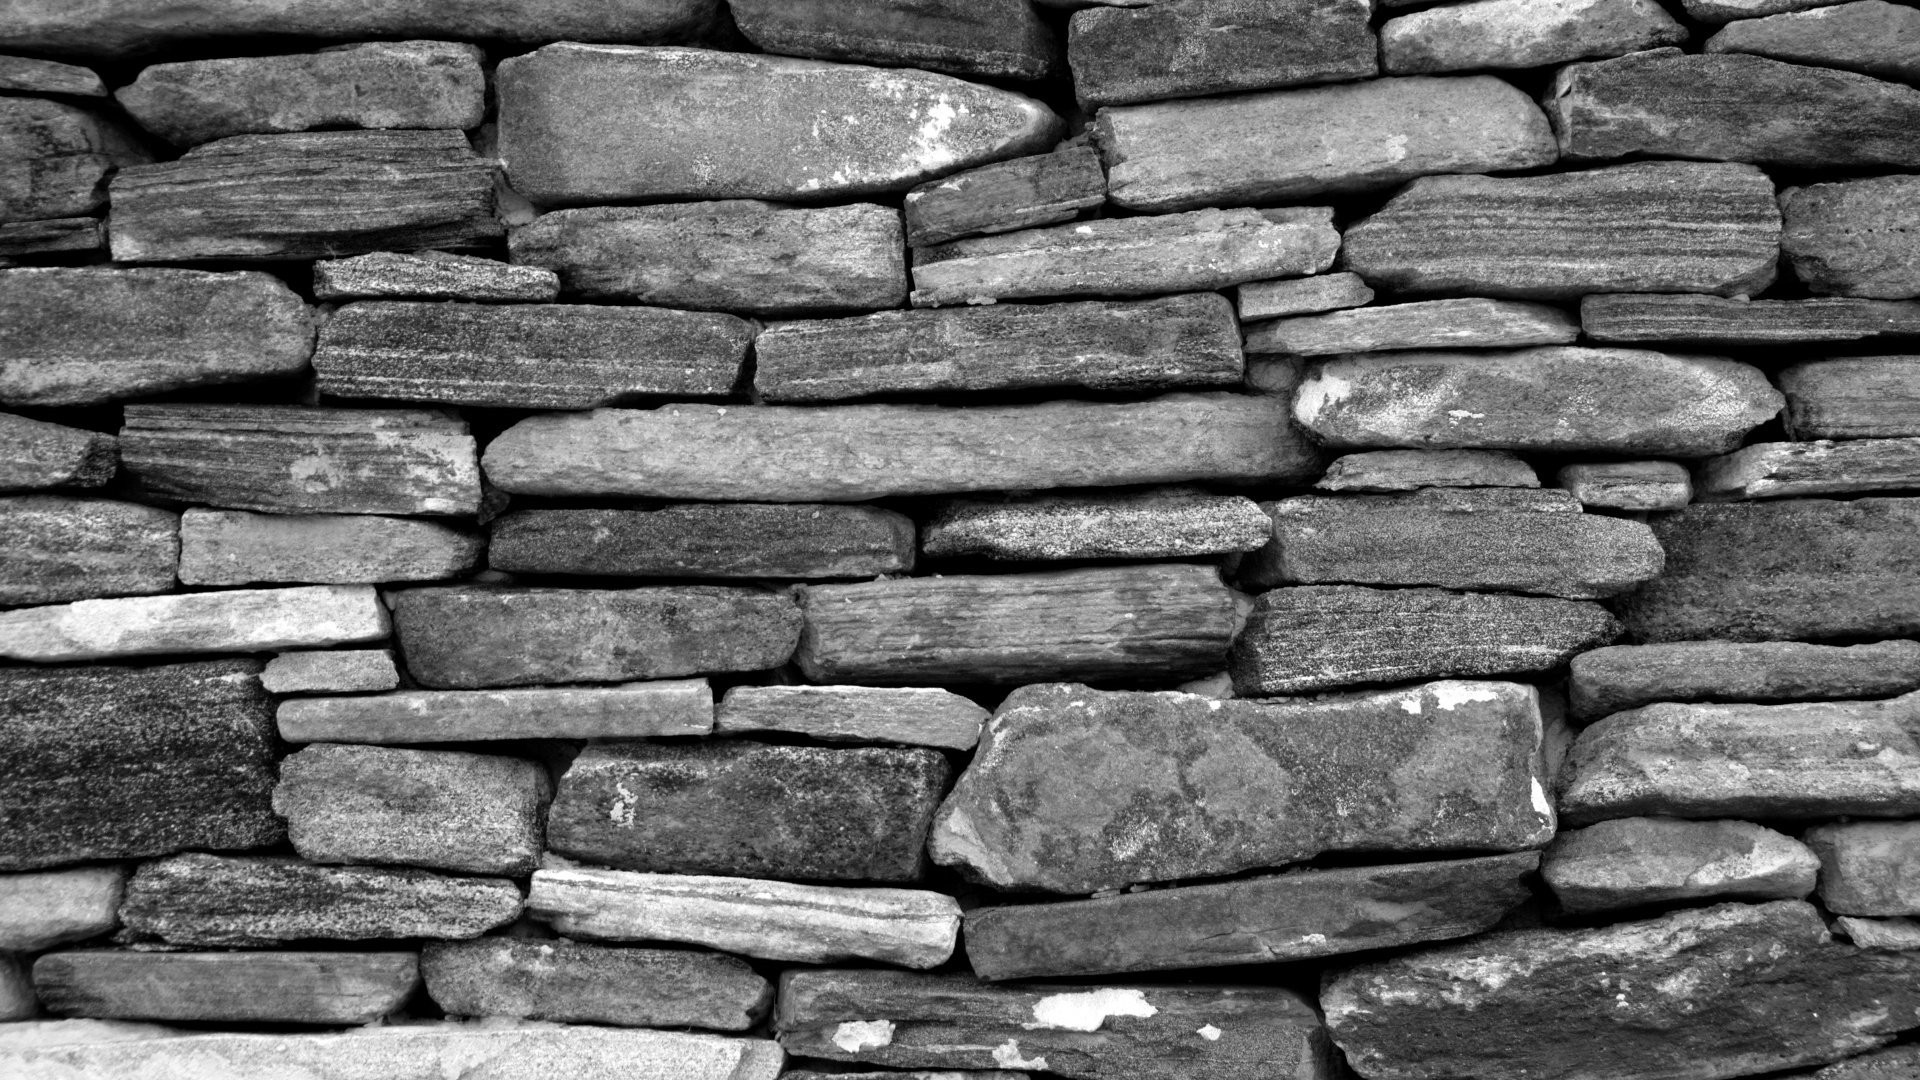 Texture Stone wallpaper for computer